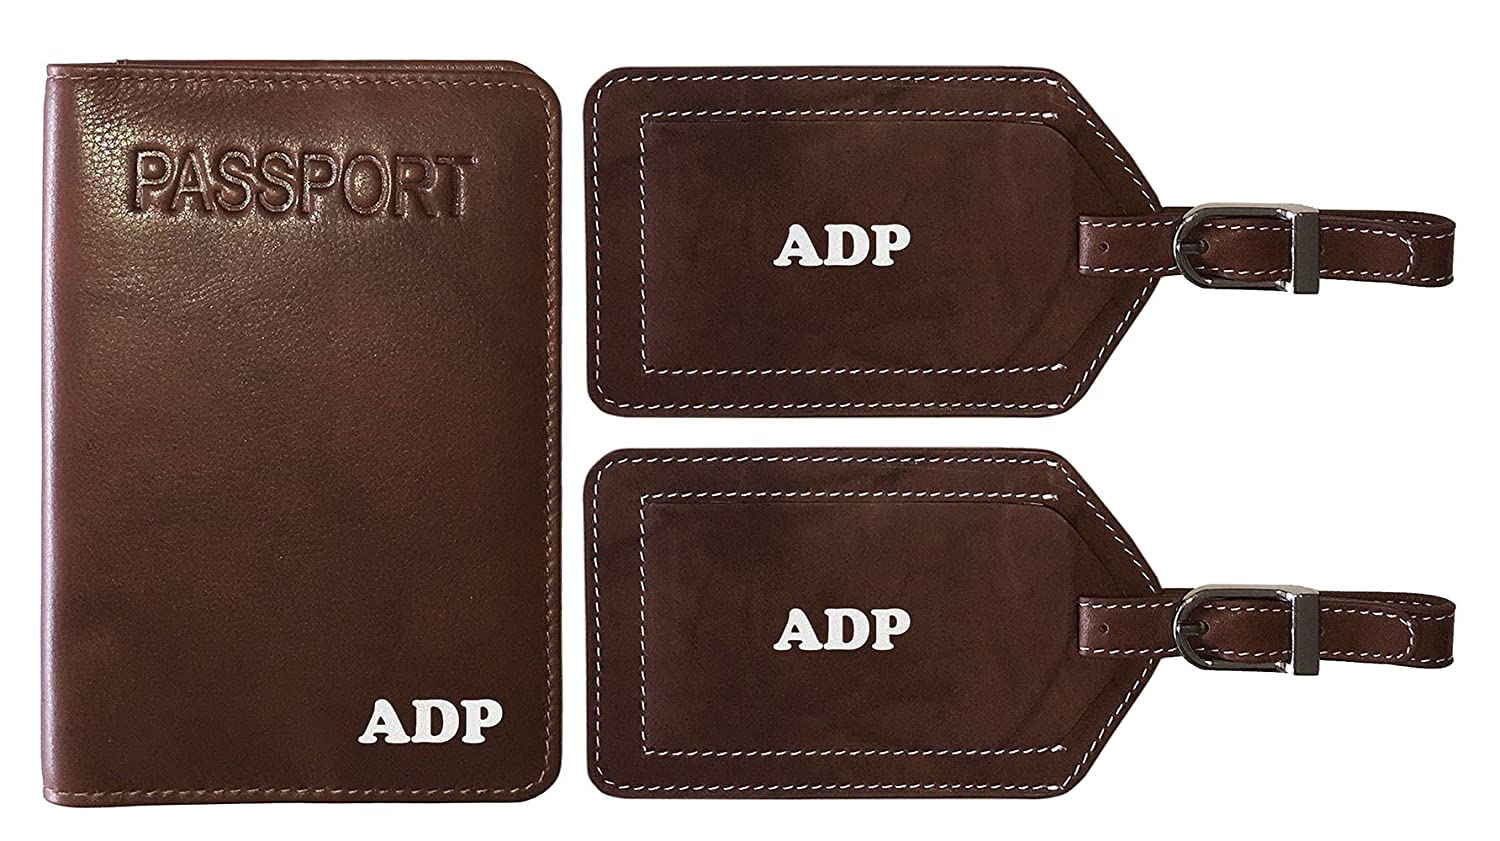 3197fa57158d Personalized Monogrammed Toffee Leather RFID Passport Cover Holder and 2  Luggage Tags